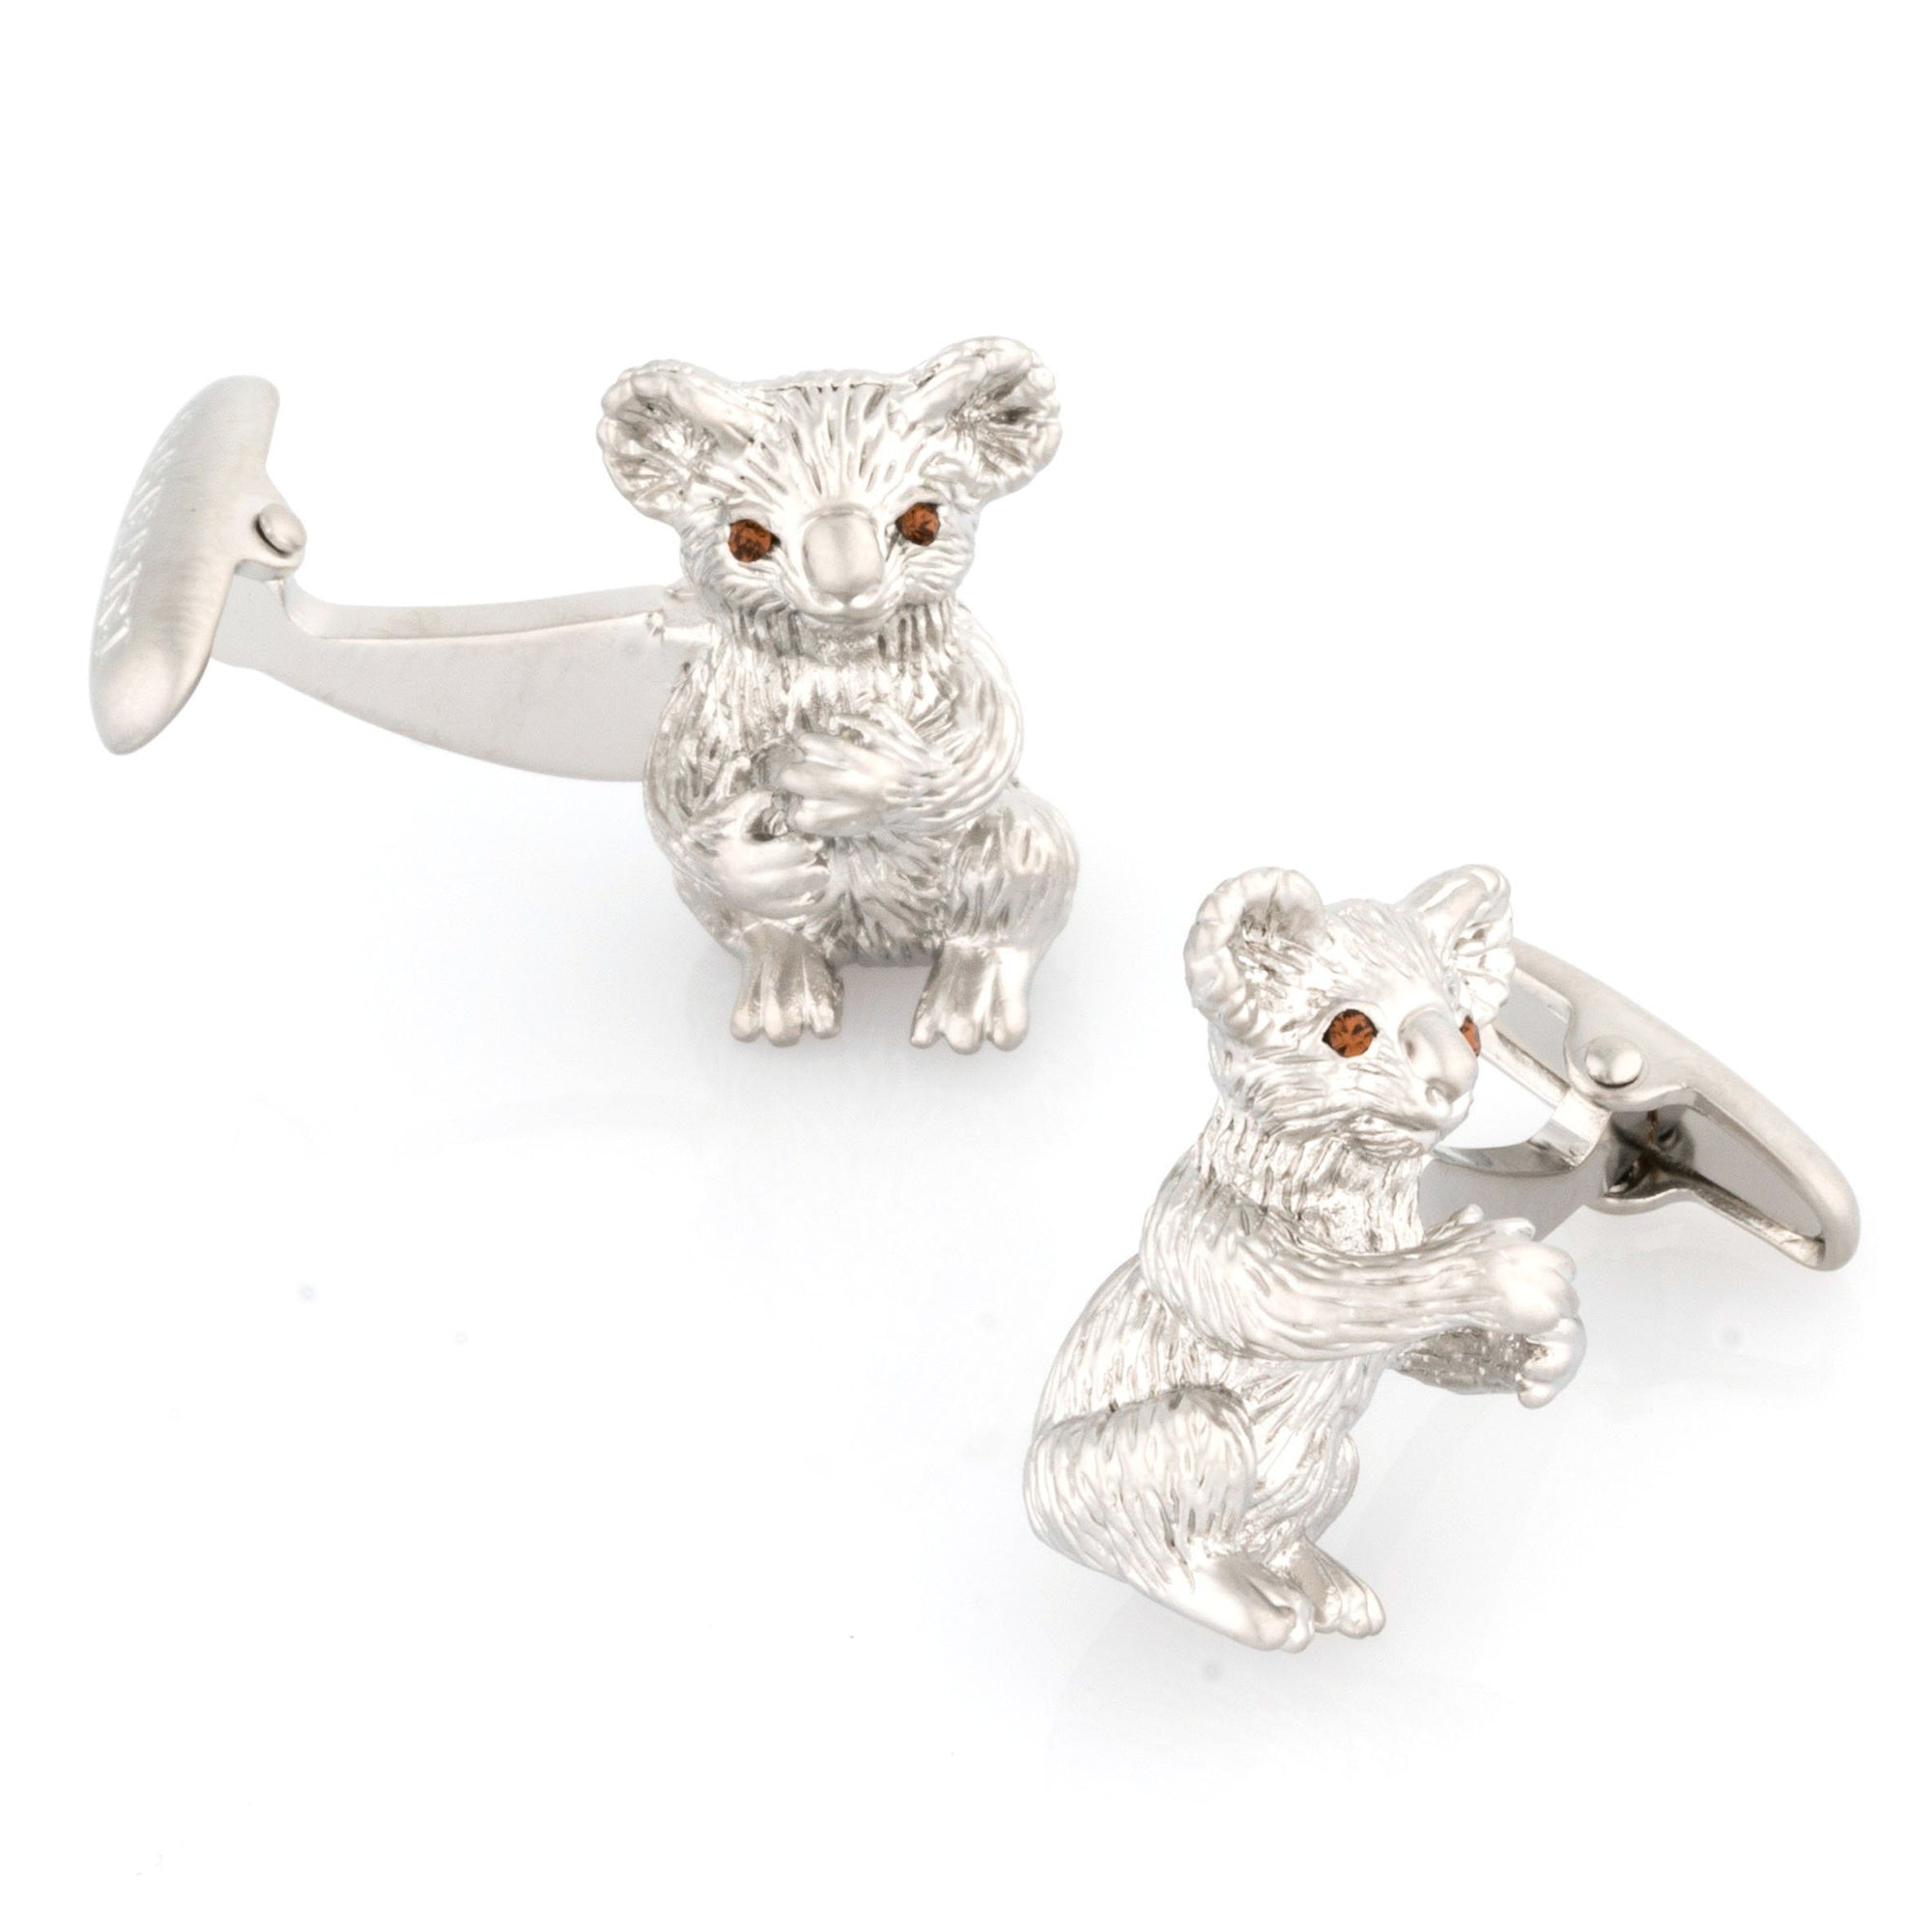 Silver Koala Cufflinks with Crystal Eyes